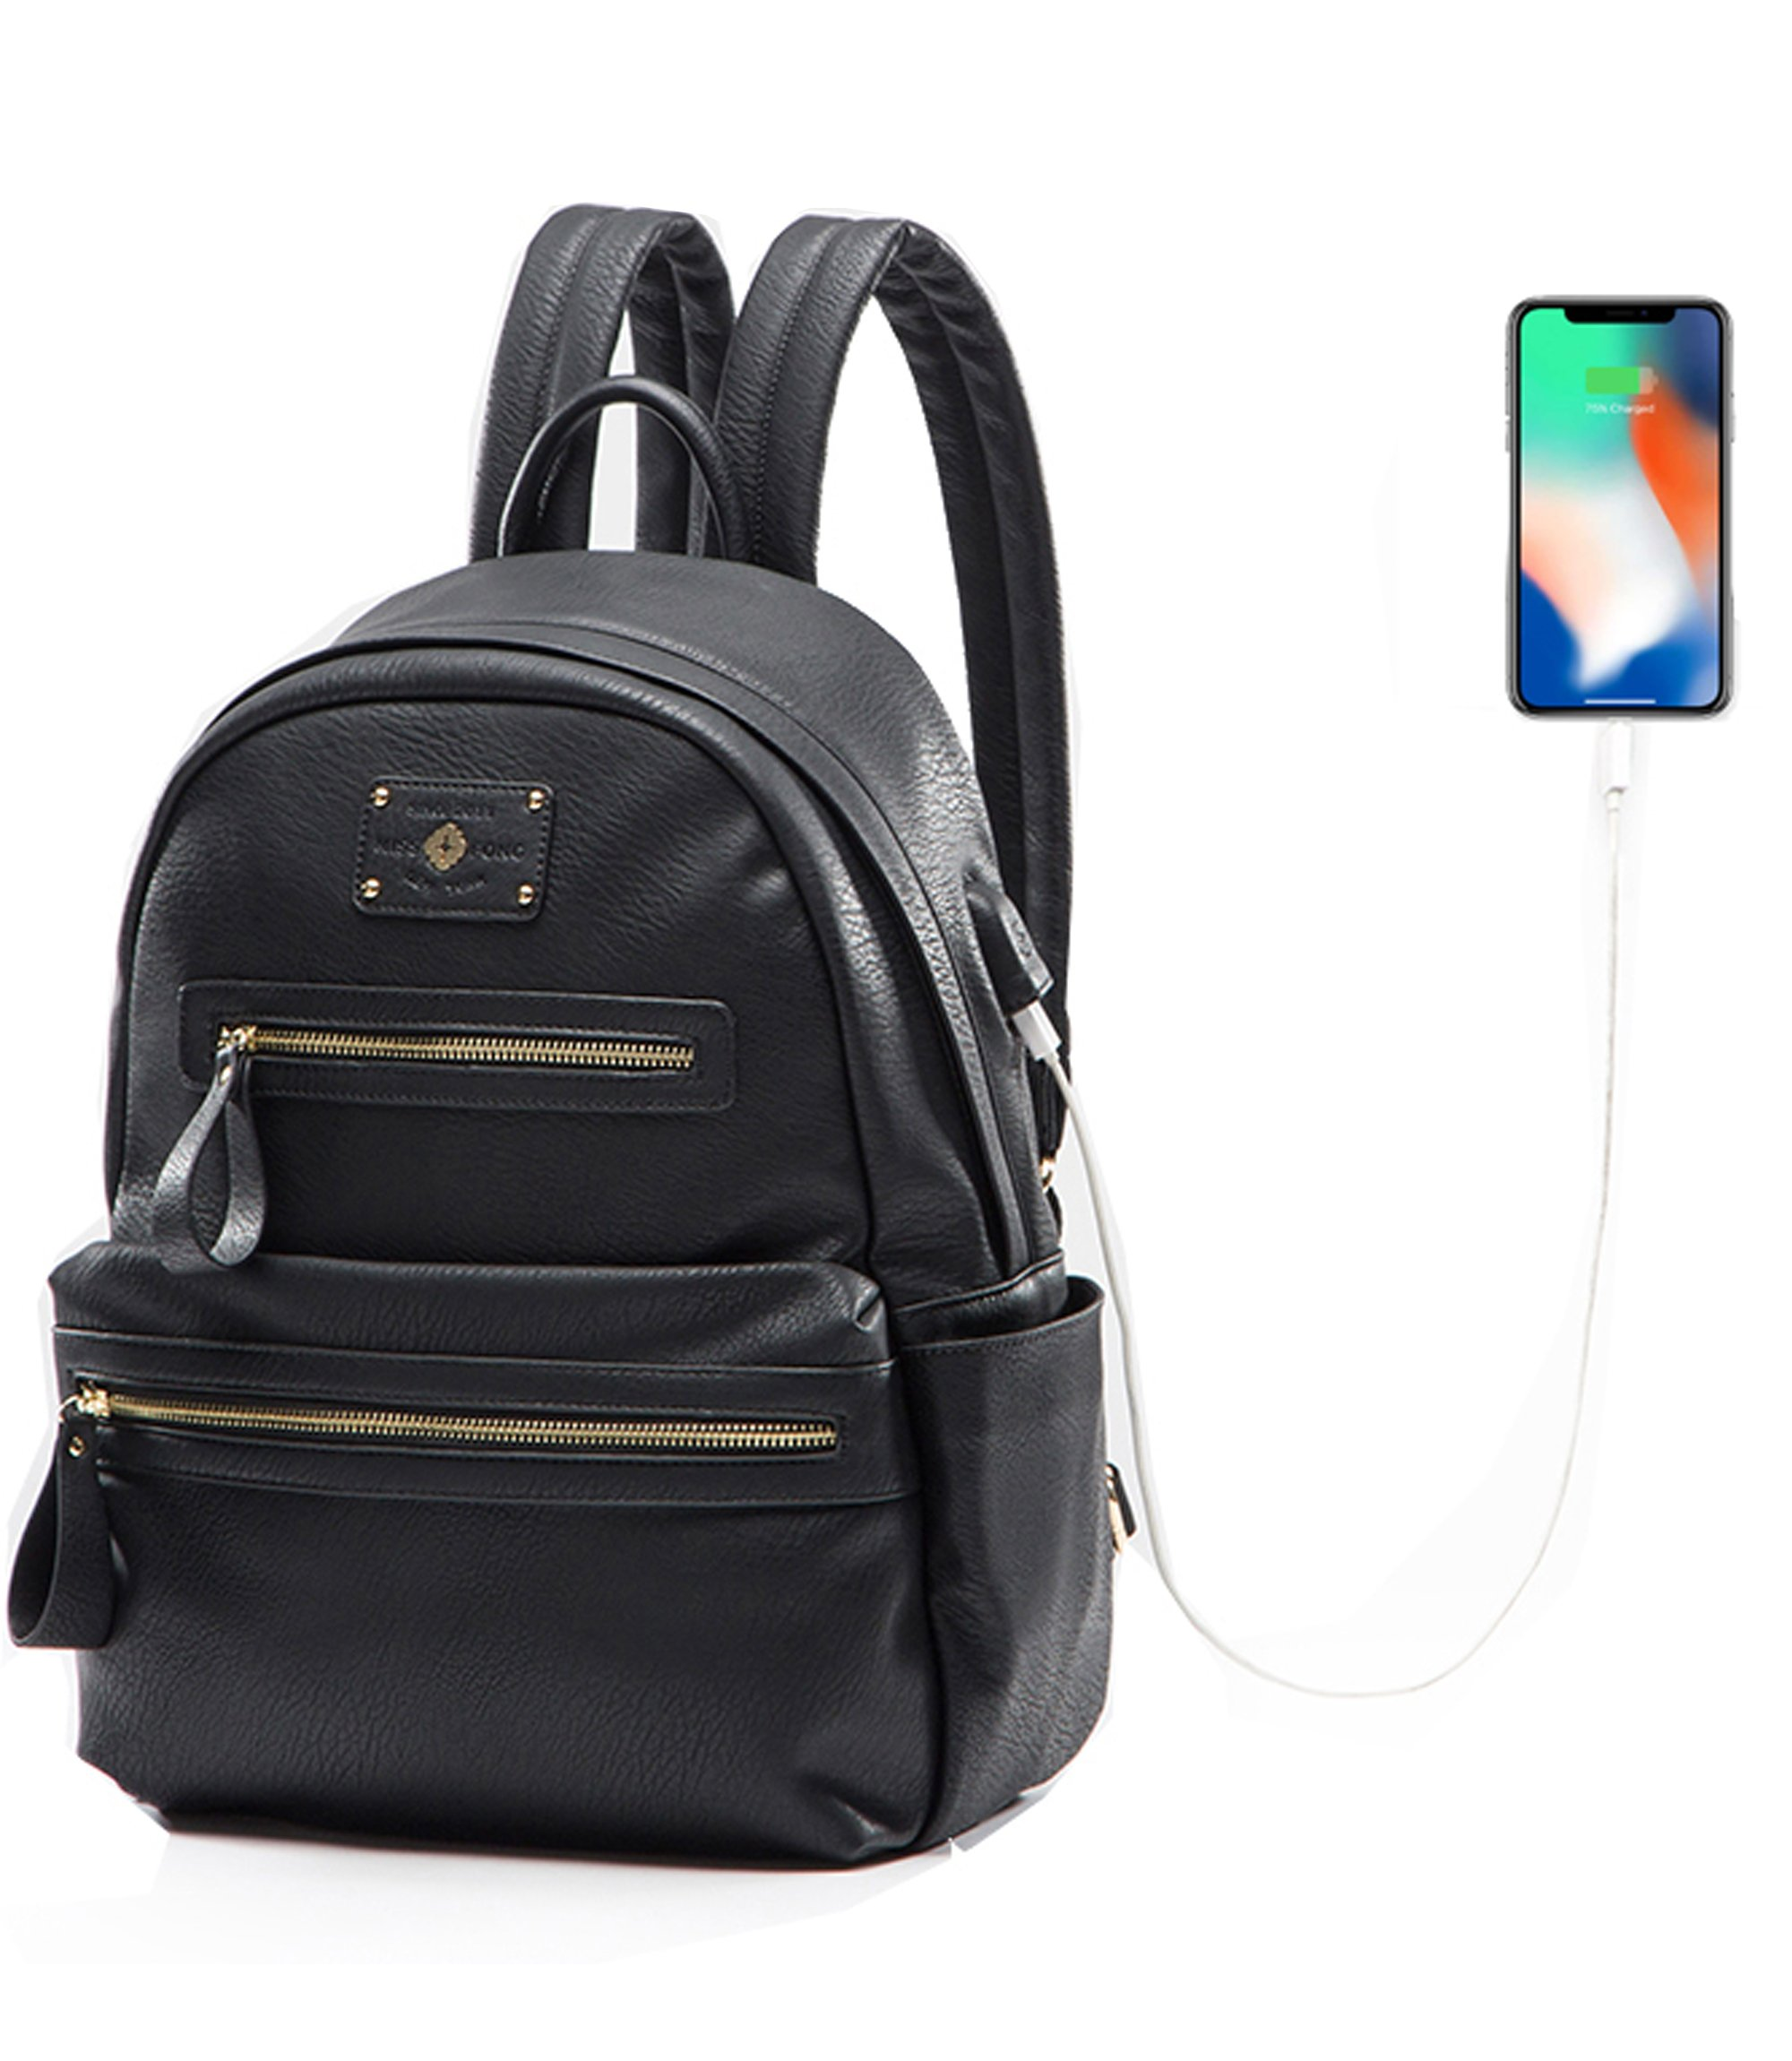 Leather Backpack Women Miss Fong,Womens Backpack School Backpack USB Charger,Fits 13 inch, 14 inch Laptop(Black) by miss fong